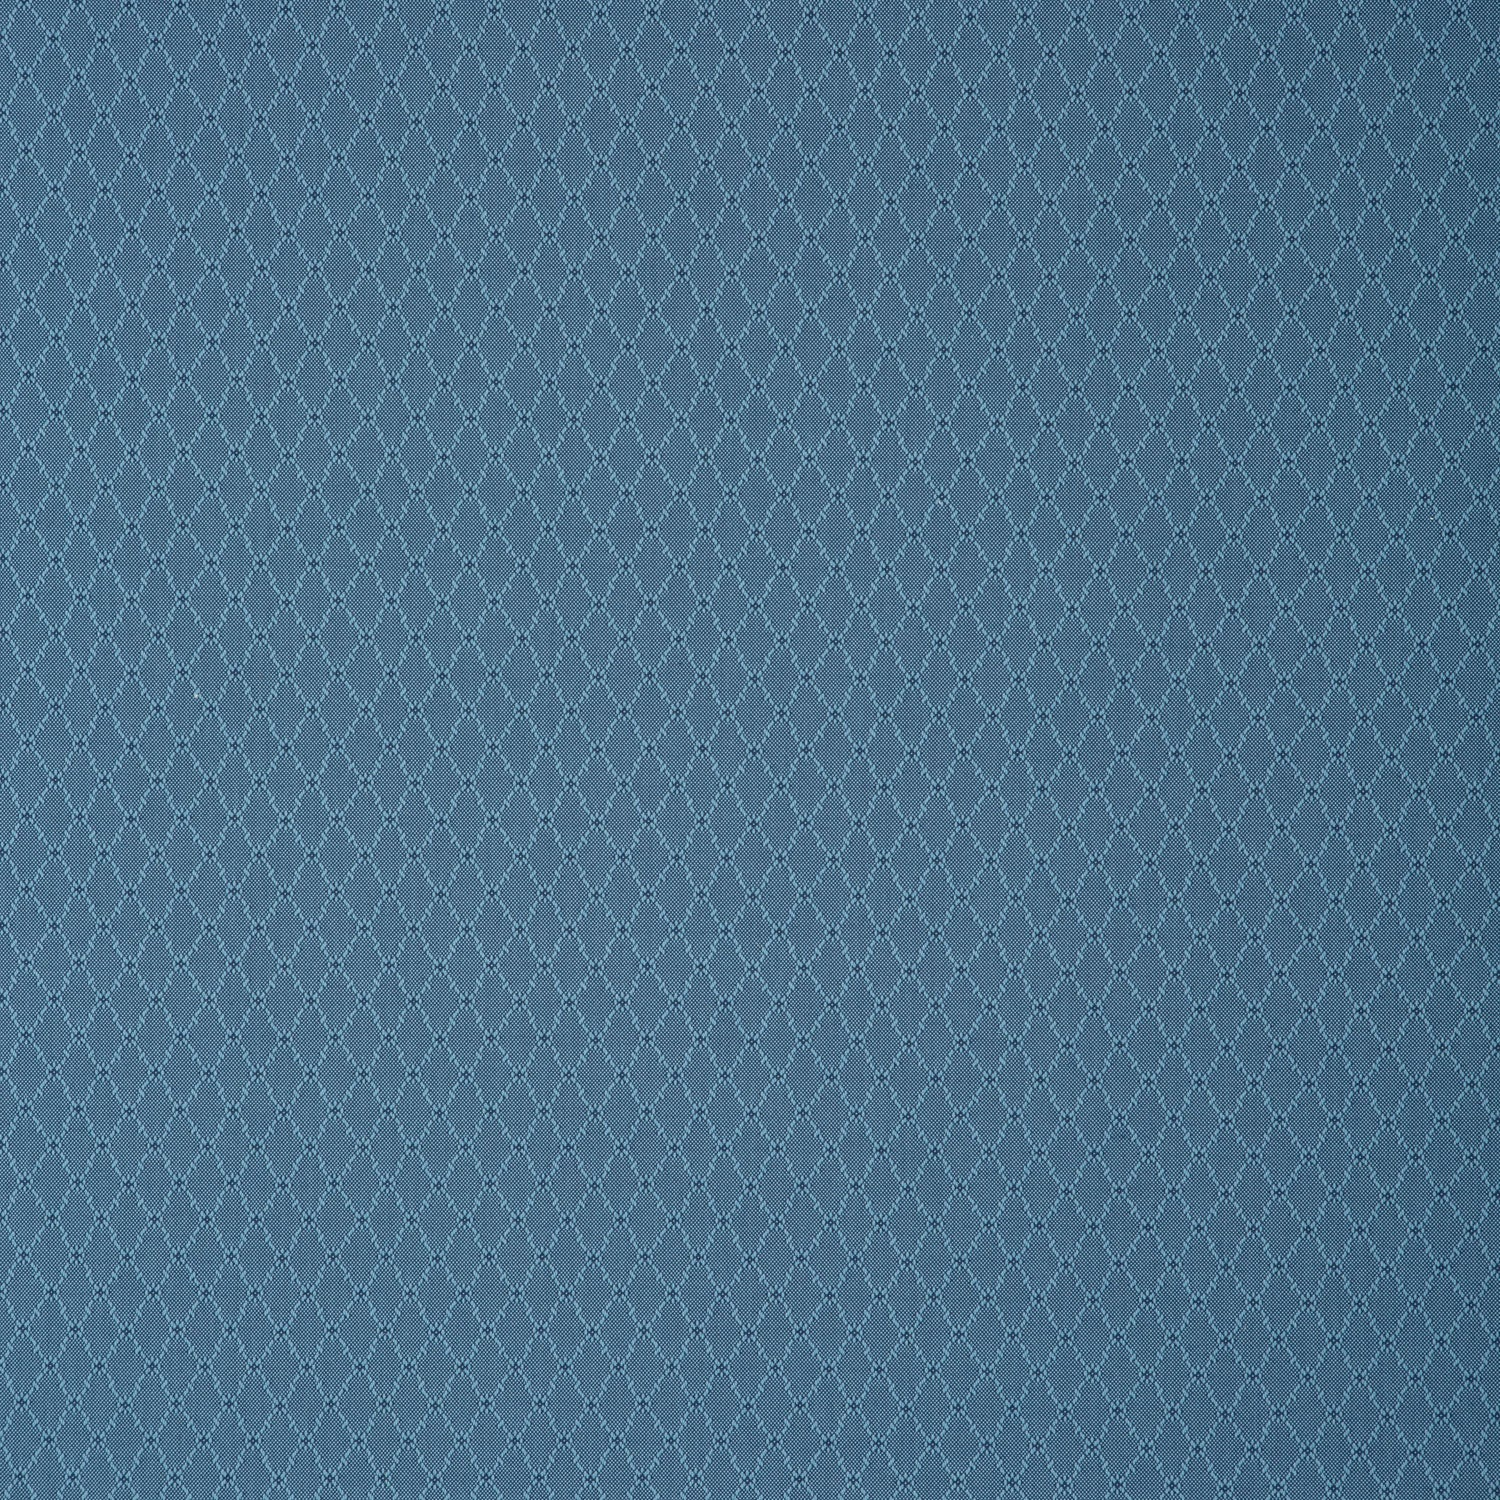 Fabric swatch of a blue fabric with trellis design for curtains and upholstery with a stain resistant finish